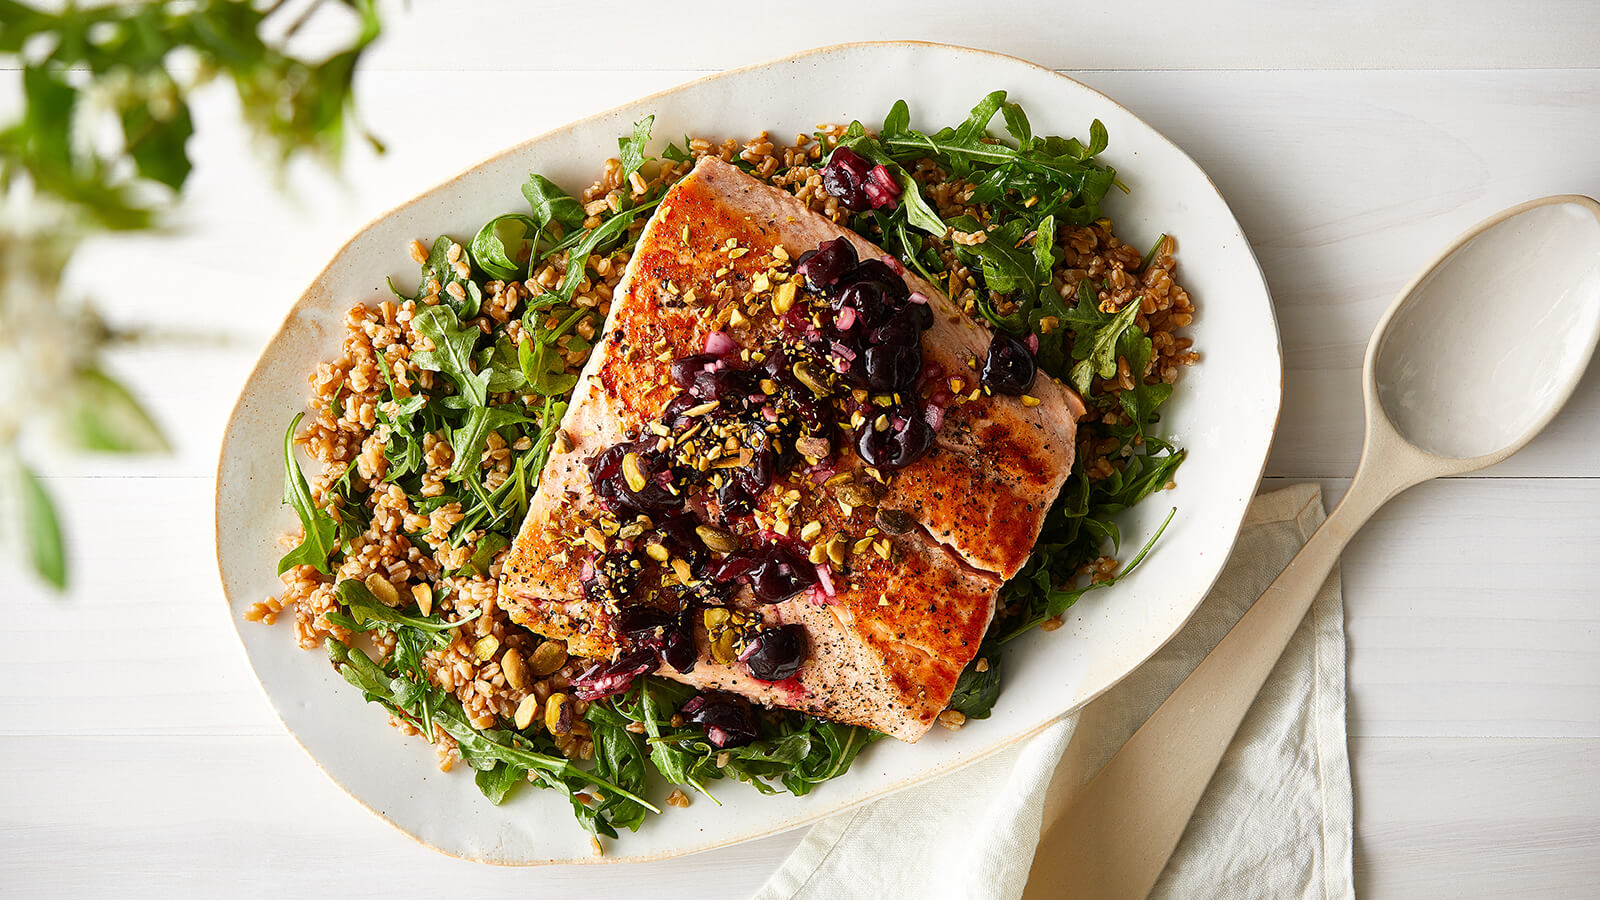 Salmon with Cherry Sauce and Farro Arugula Salad